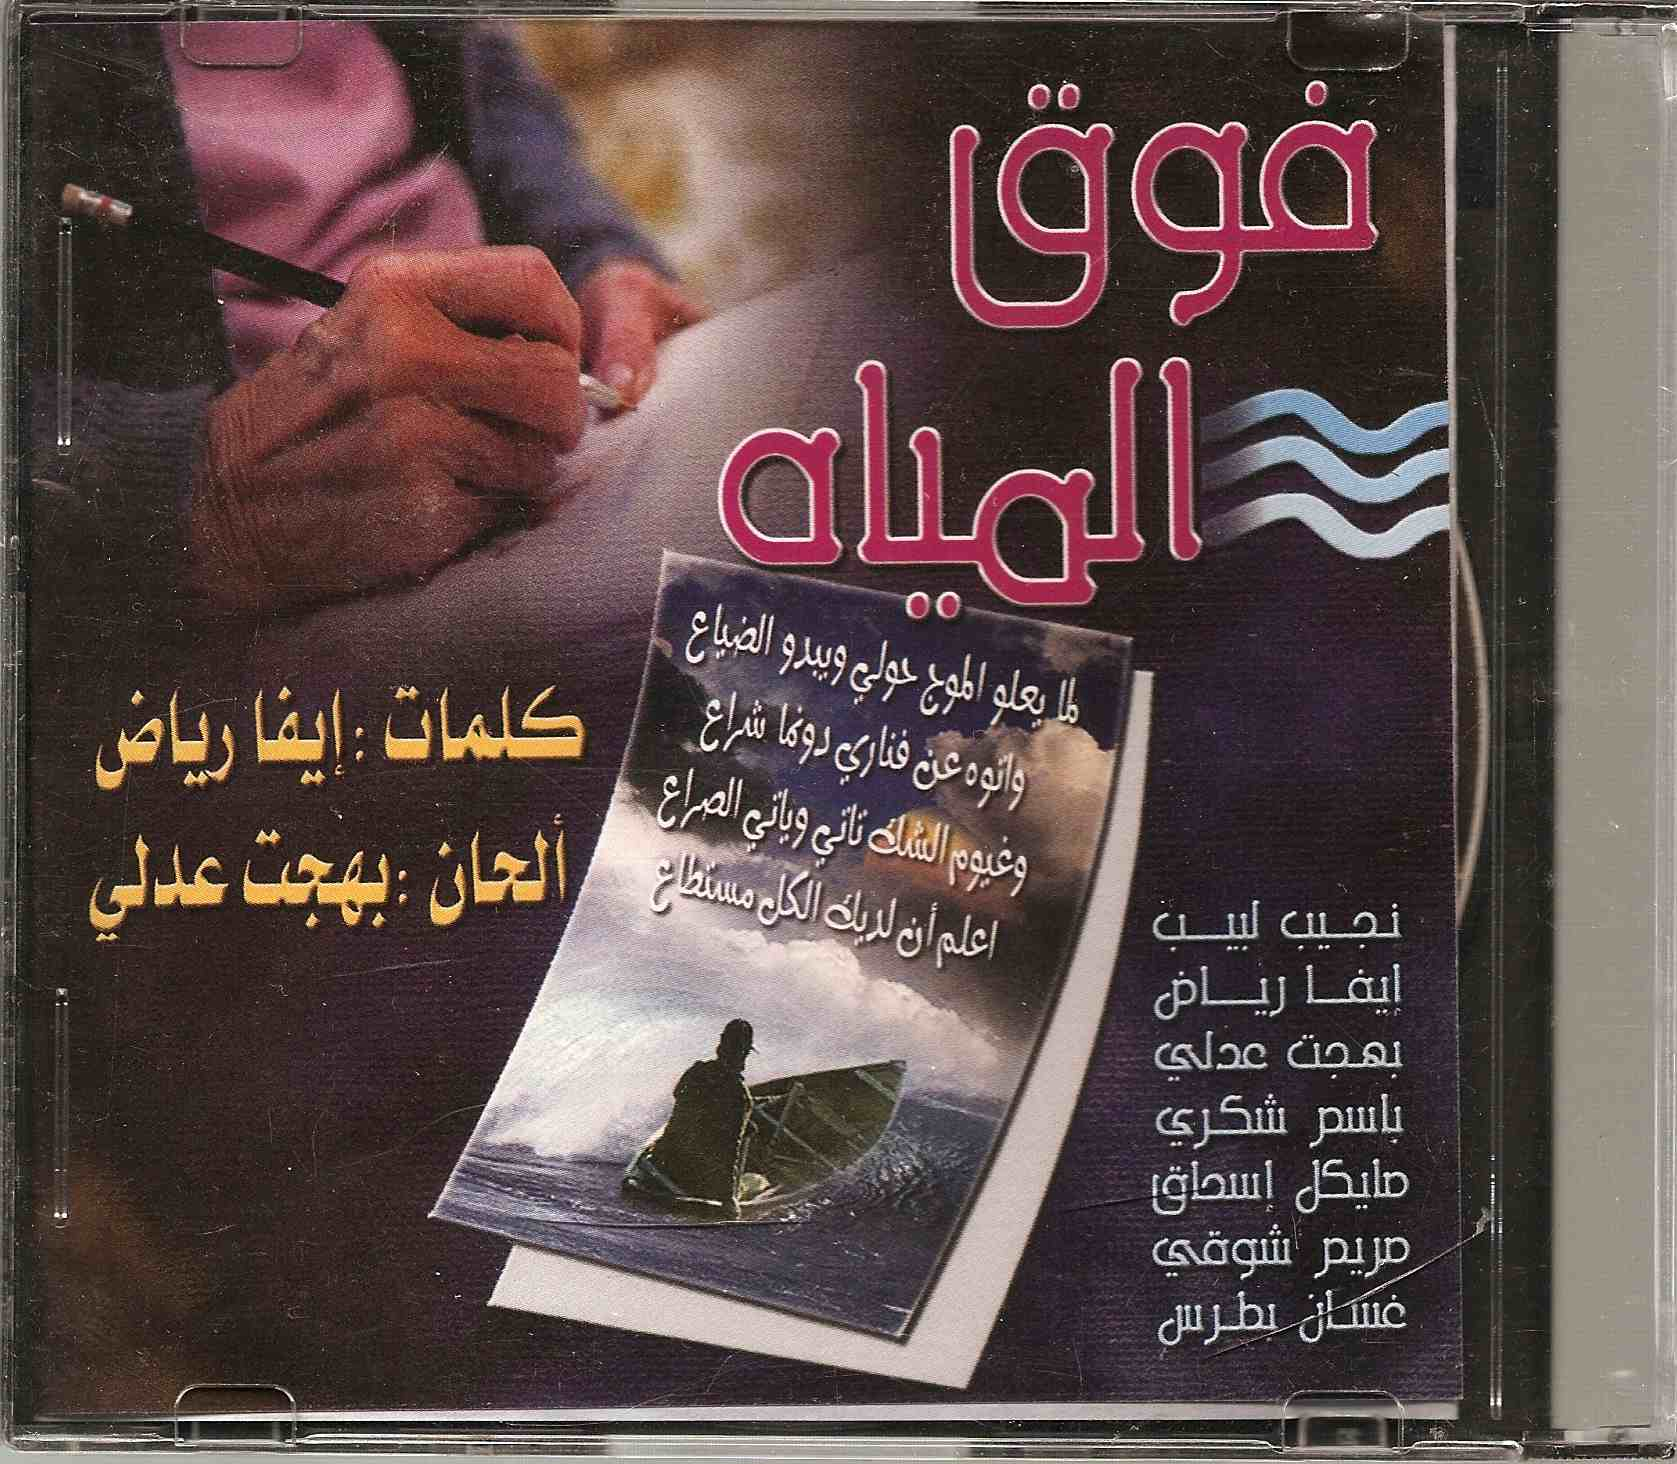 Over the Water Arabic Music CD by Efa Reaad & Bahgat Adly